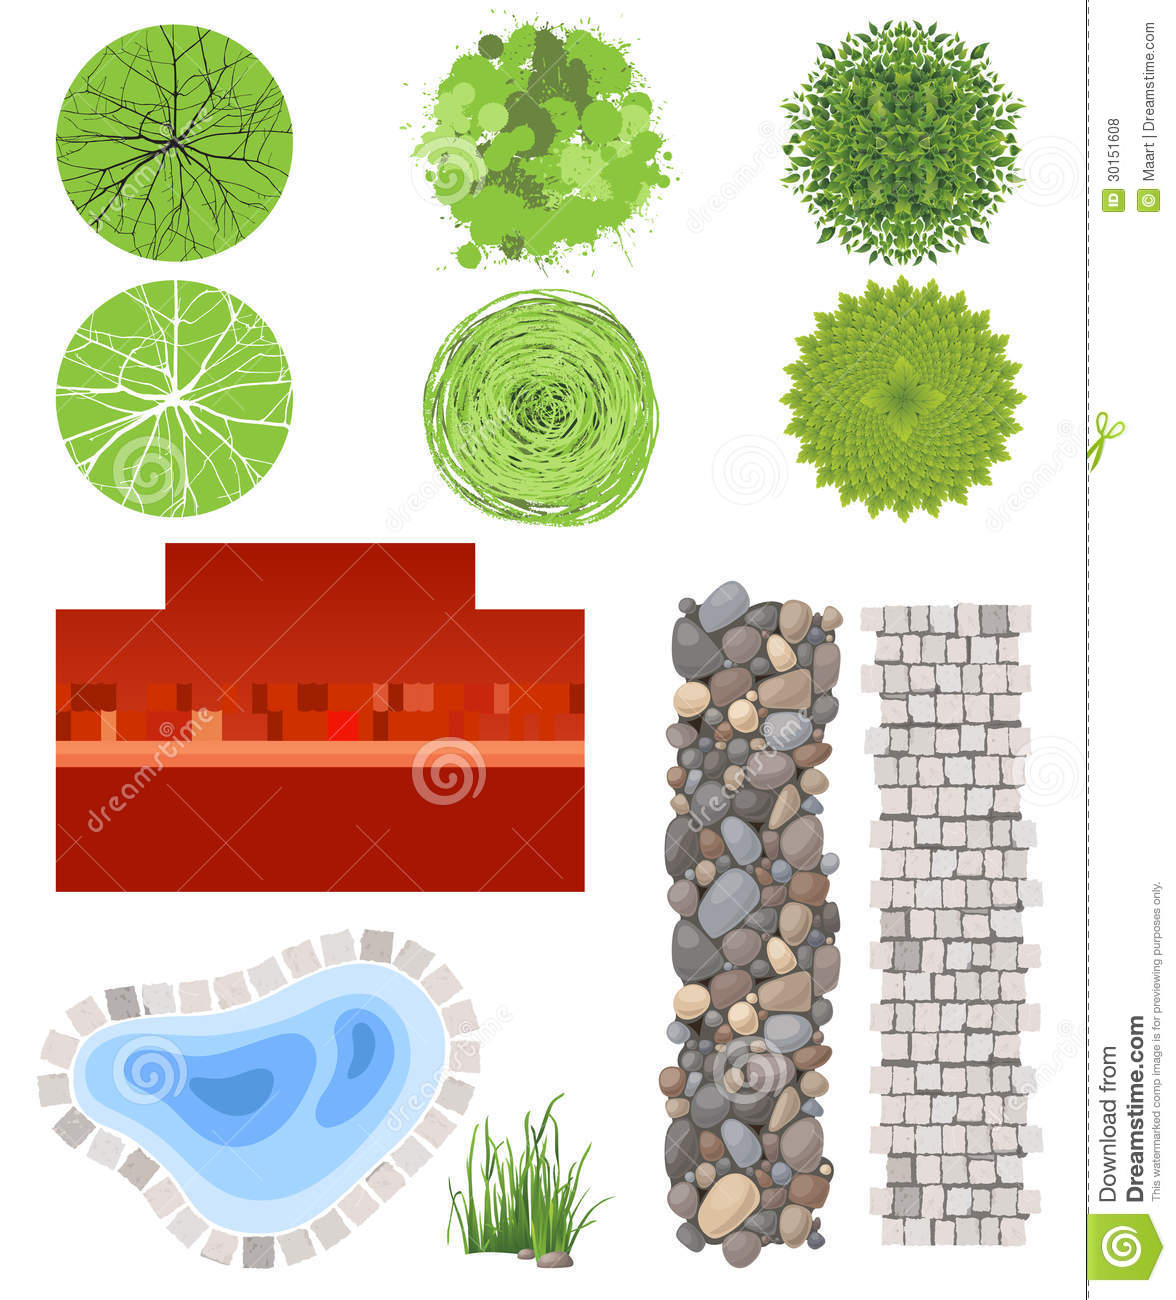 Landscape design elements royalty free stock photos for Design your landscape